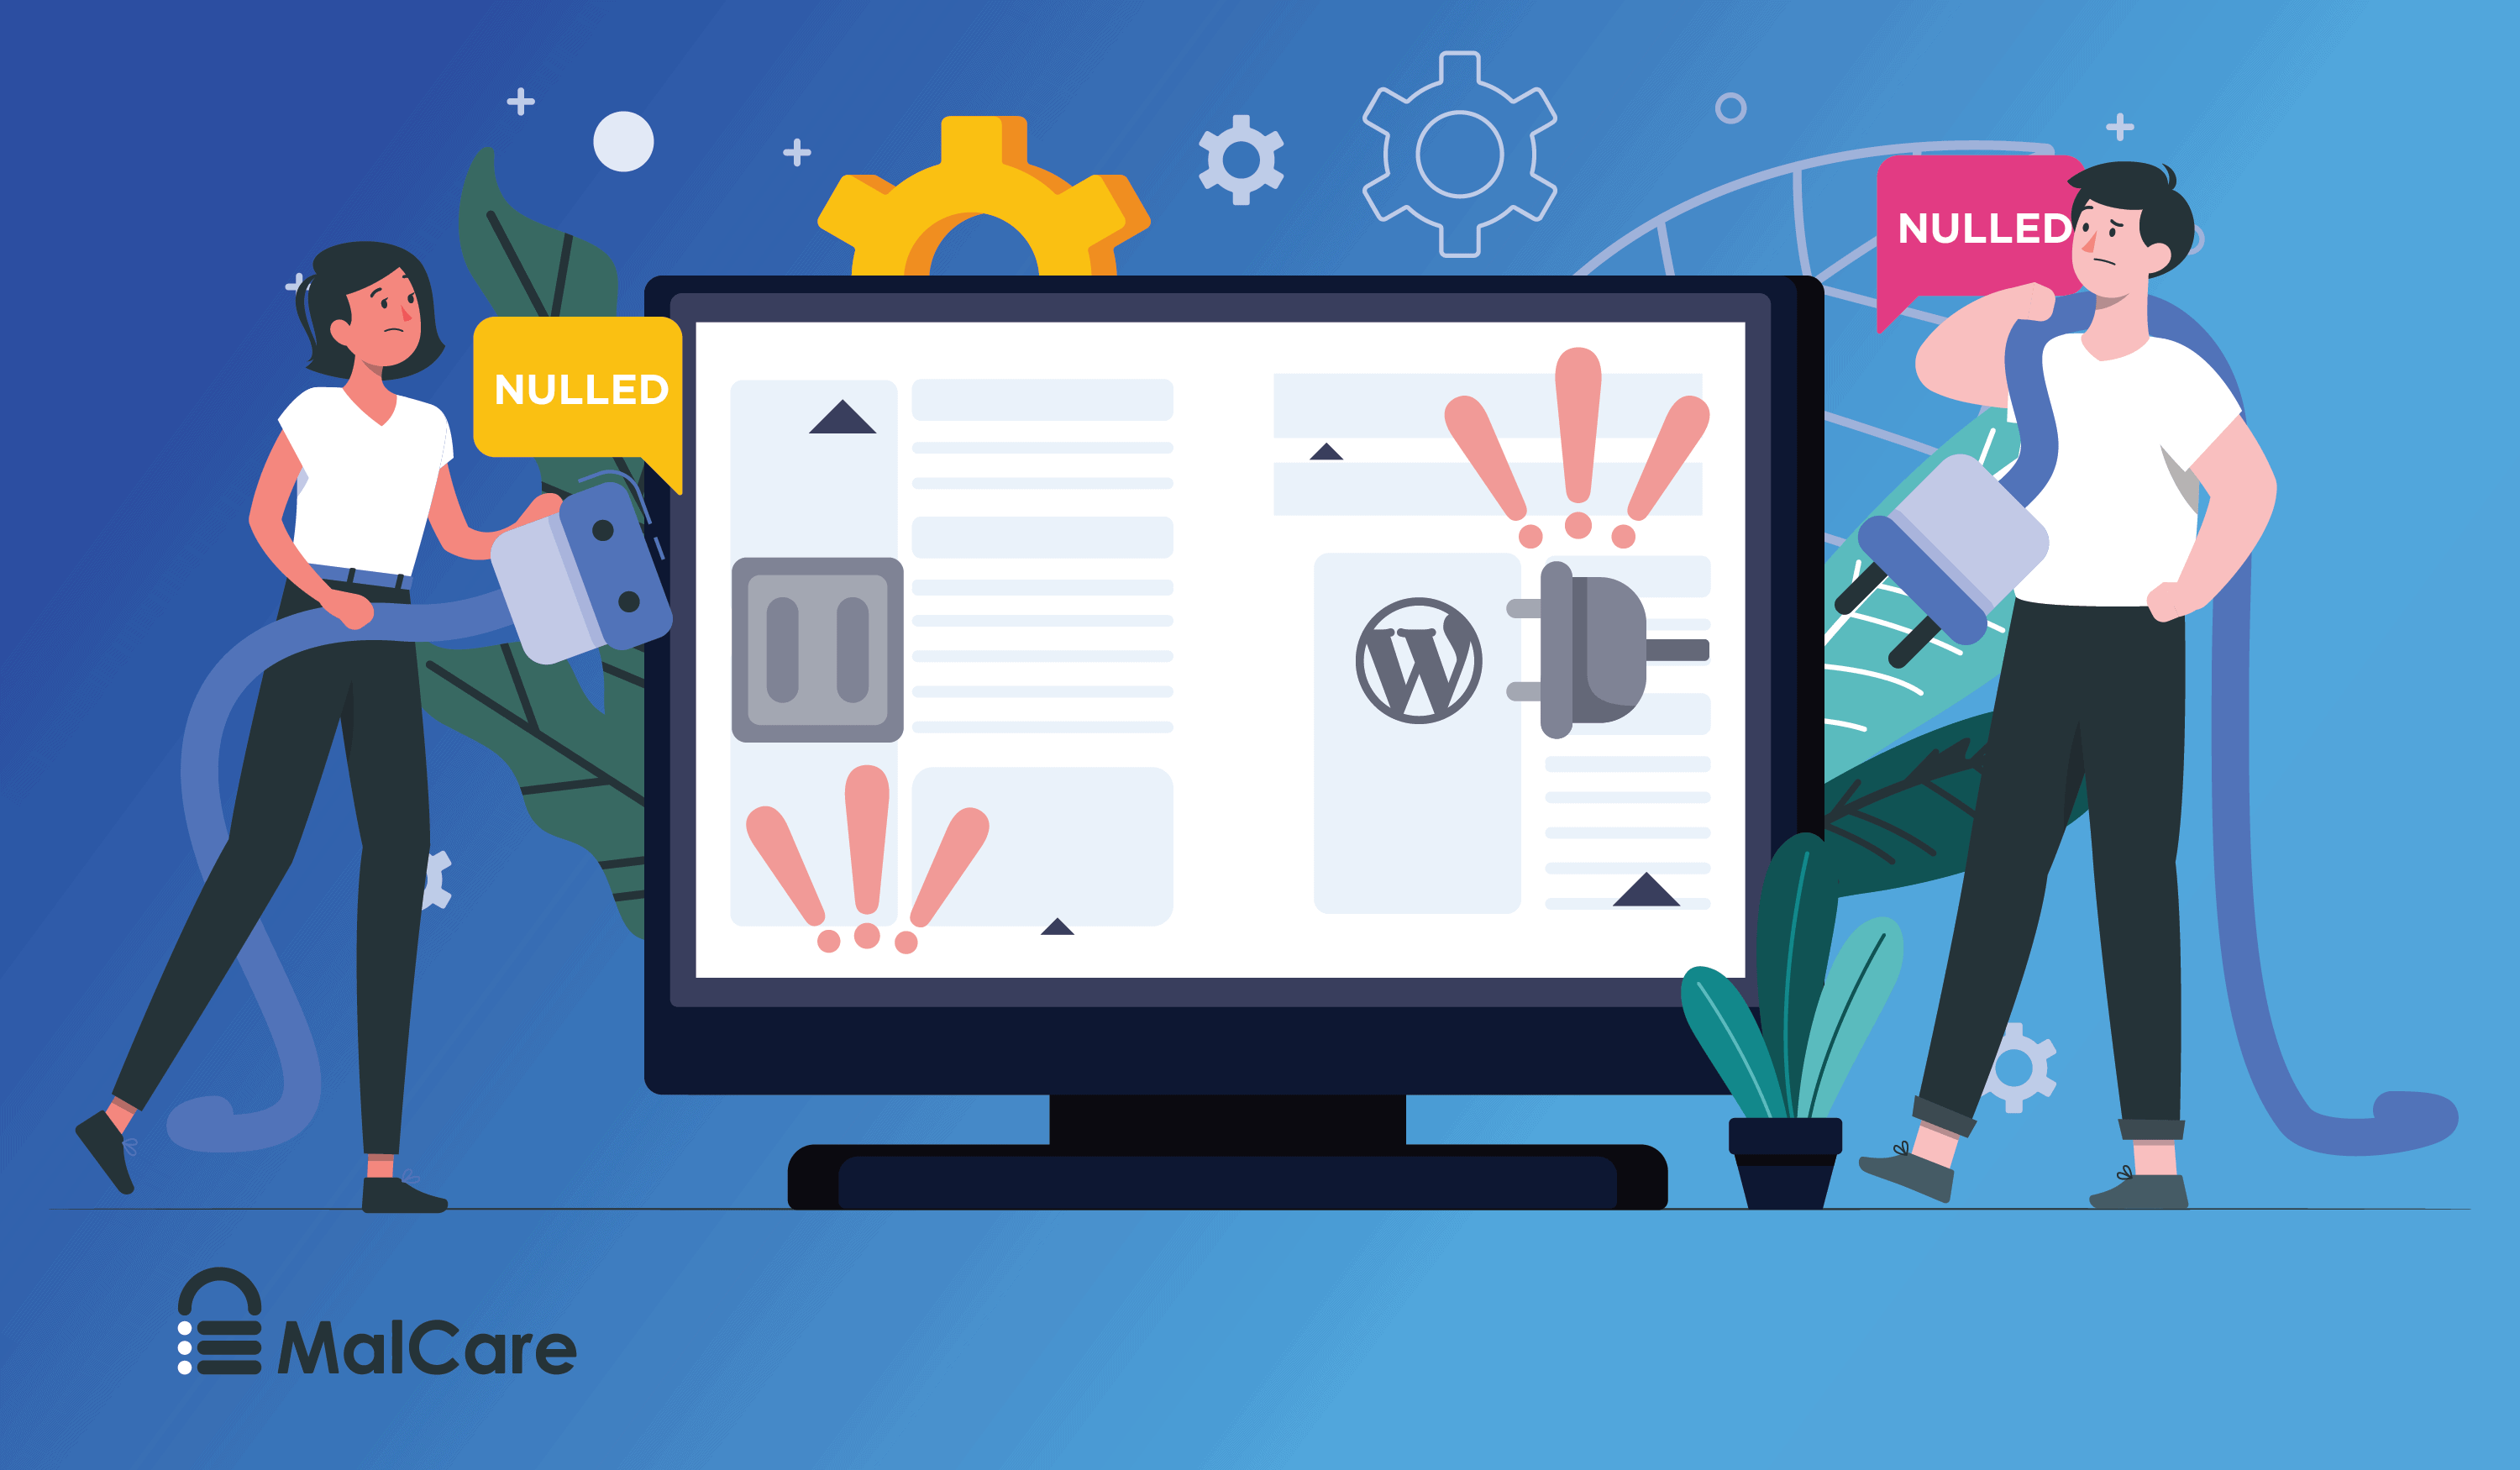 Nulled WordPress Themes and Nulled WordPress Plugins